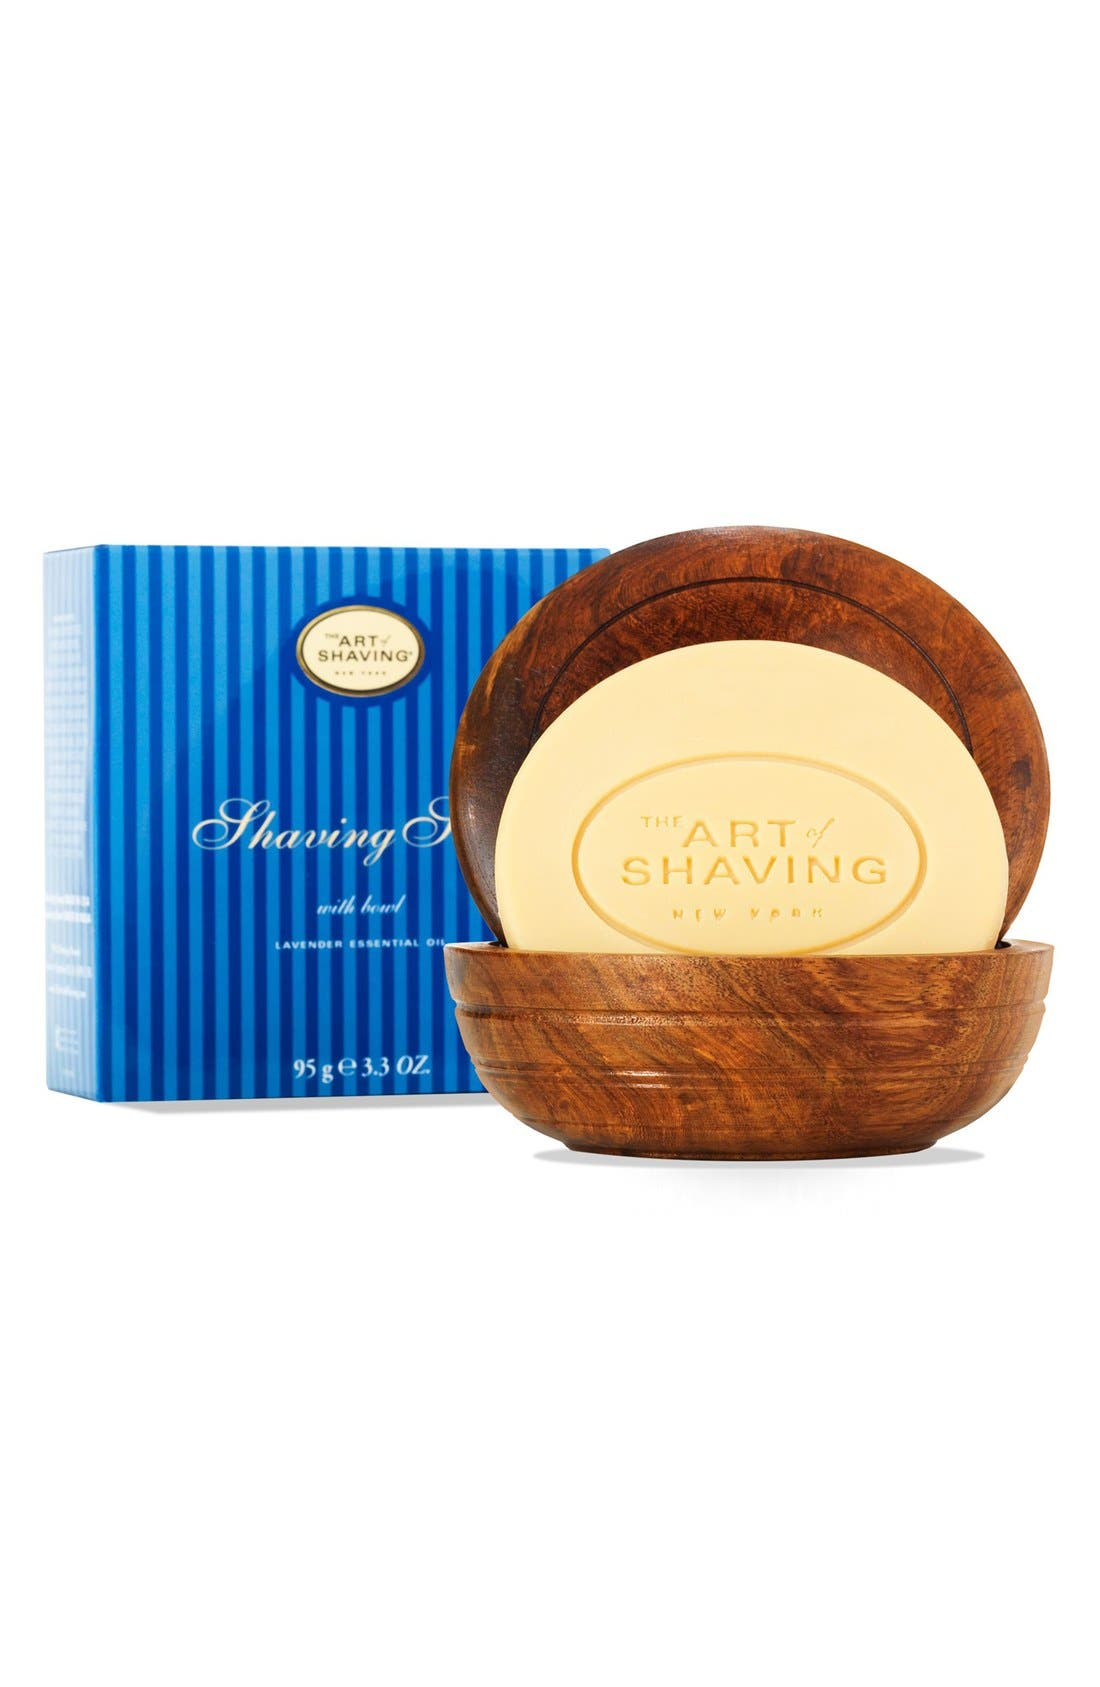 The Art of Shaving® Unscented Shaving Soap with Bowl